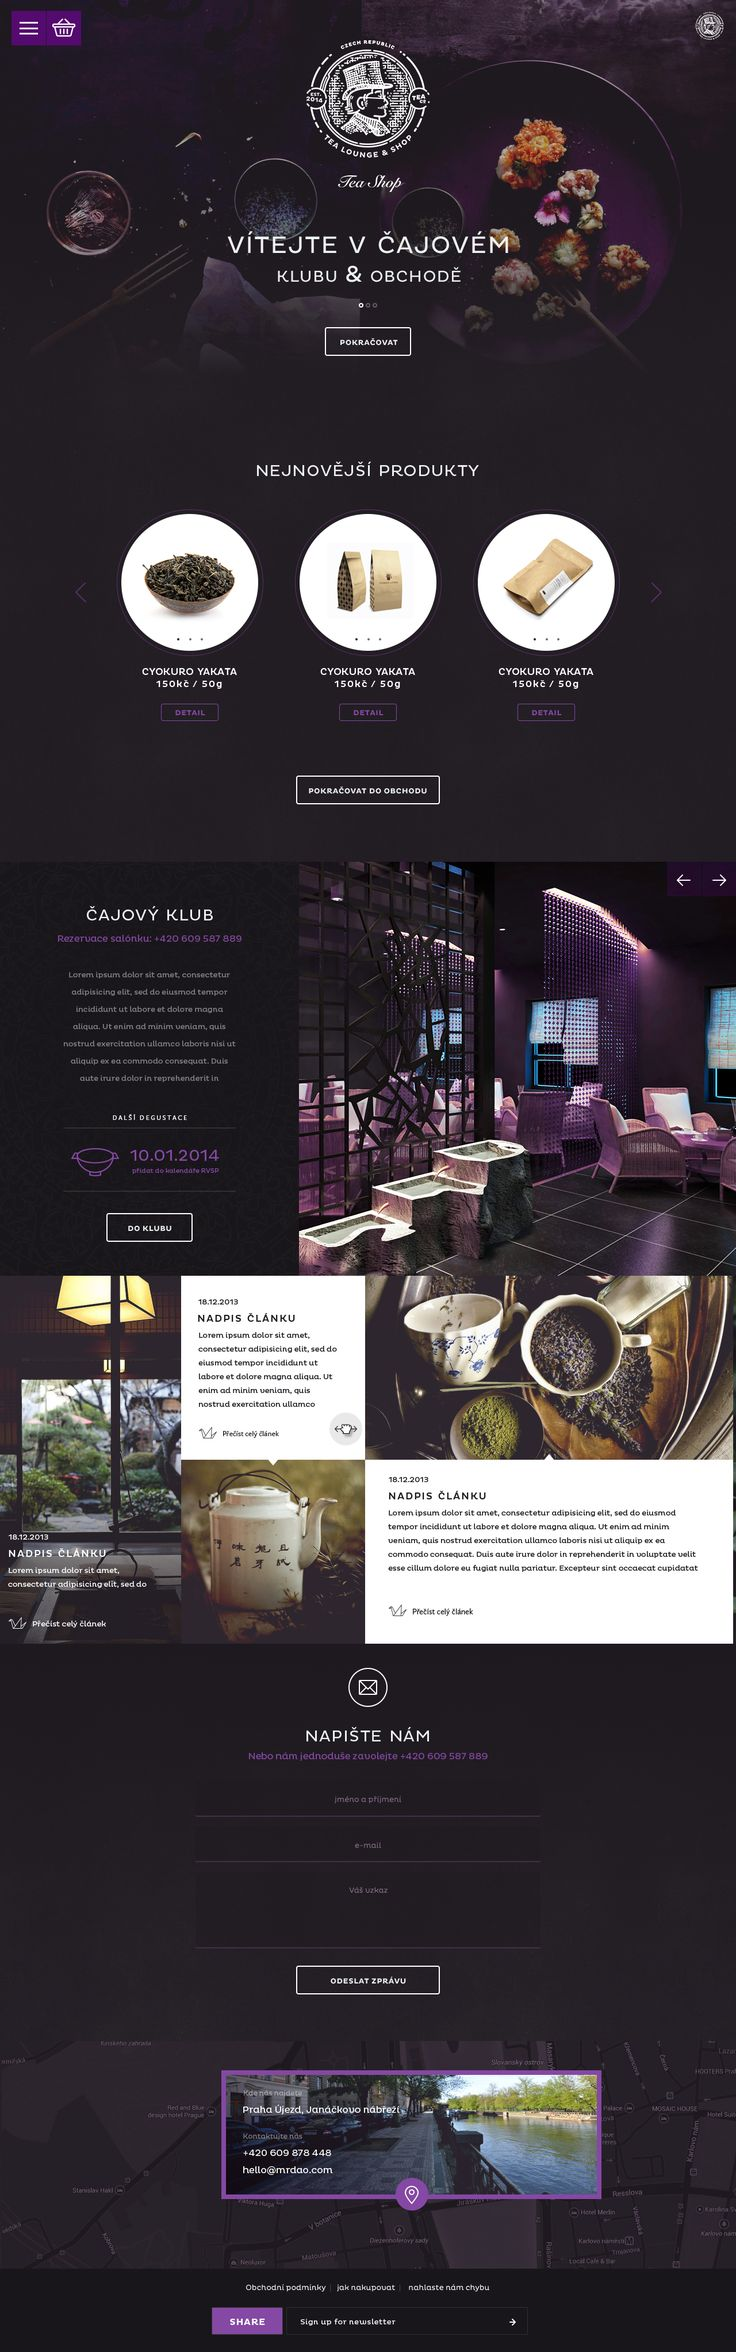 Mr.Dao Tea Lounge & Shop. Most exotic tea web design. #webdesign #design #tea